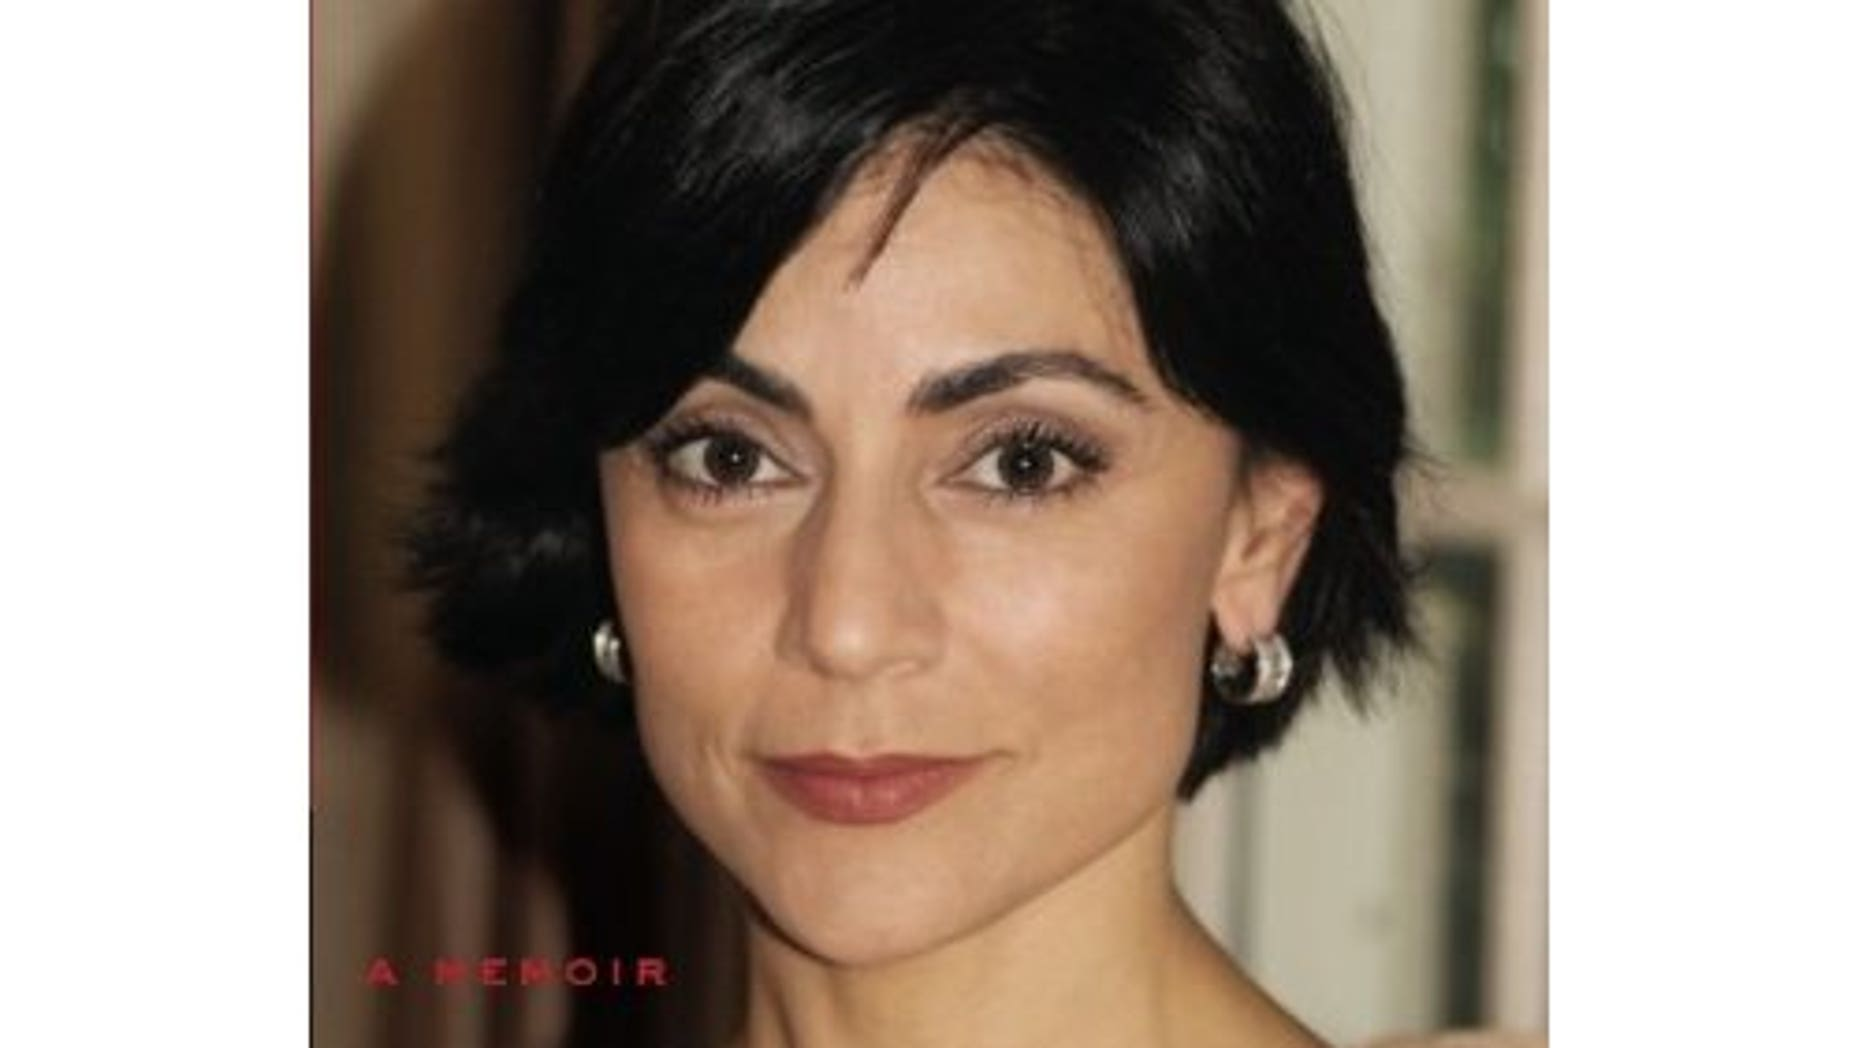 """Classified Woman - The Sibel Edmonds Story: A Memoir"" as seen on Amazon.com"